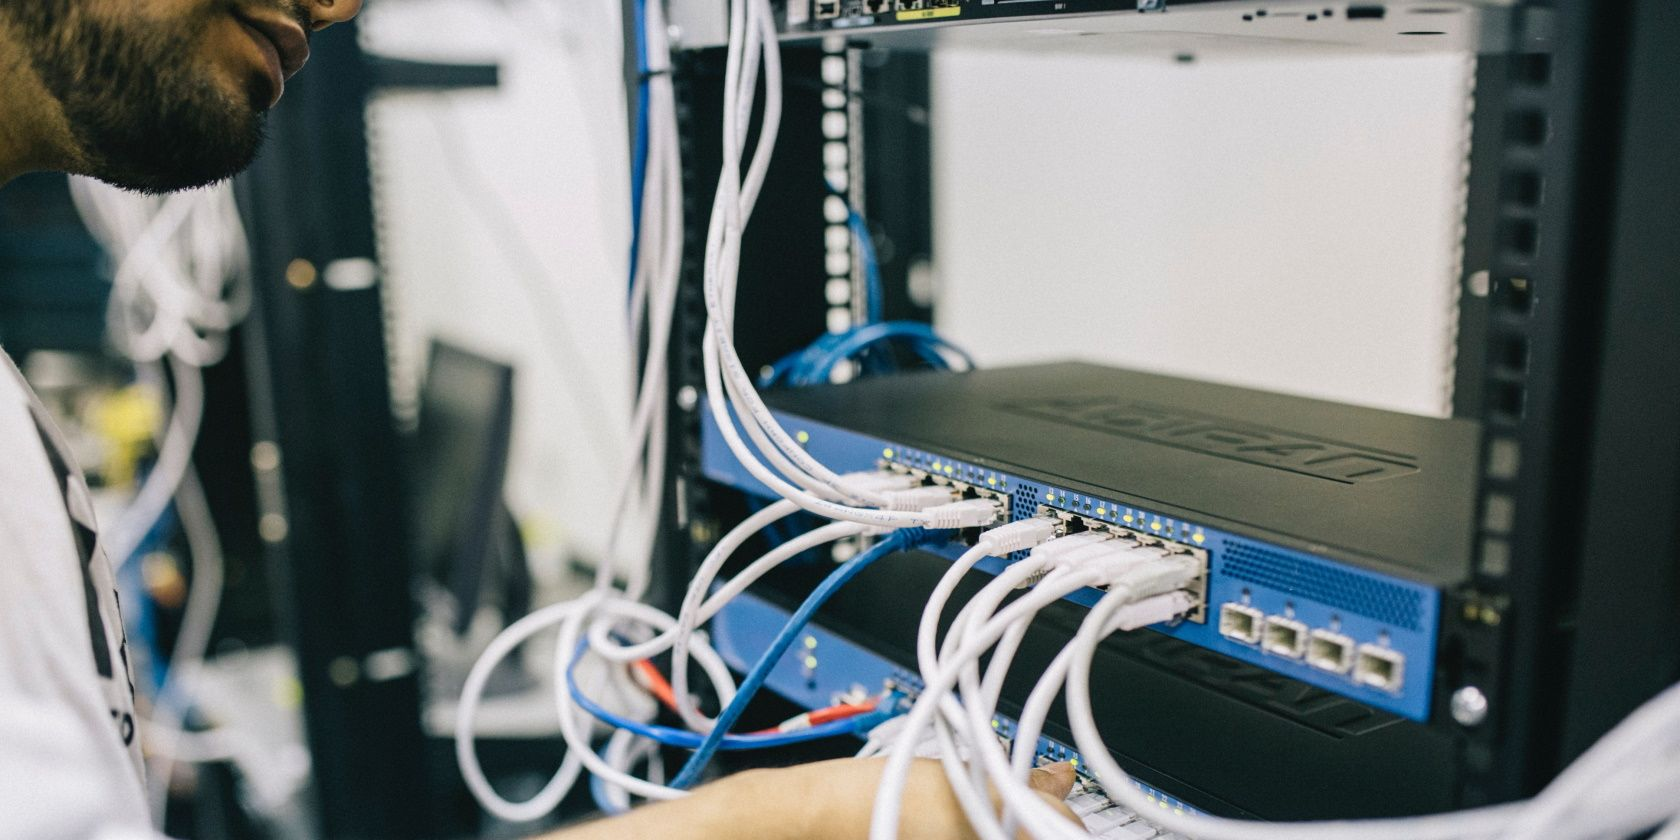 Why You Should Not Use Telnet for Remote Connections